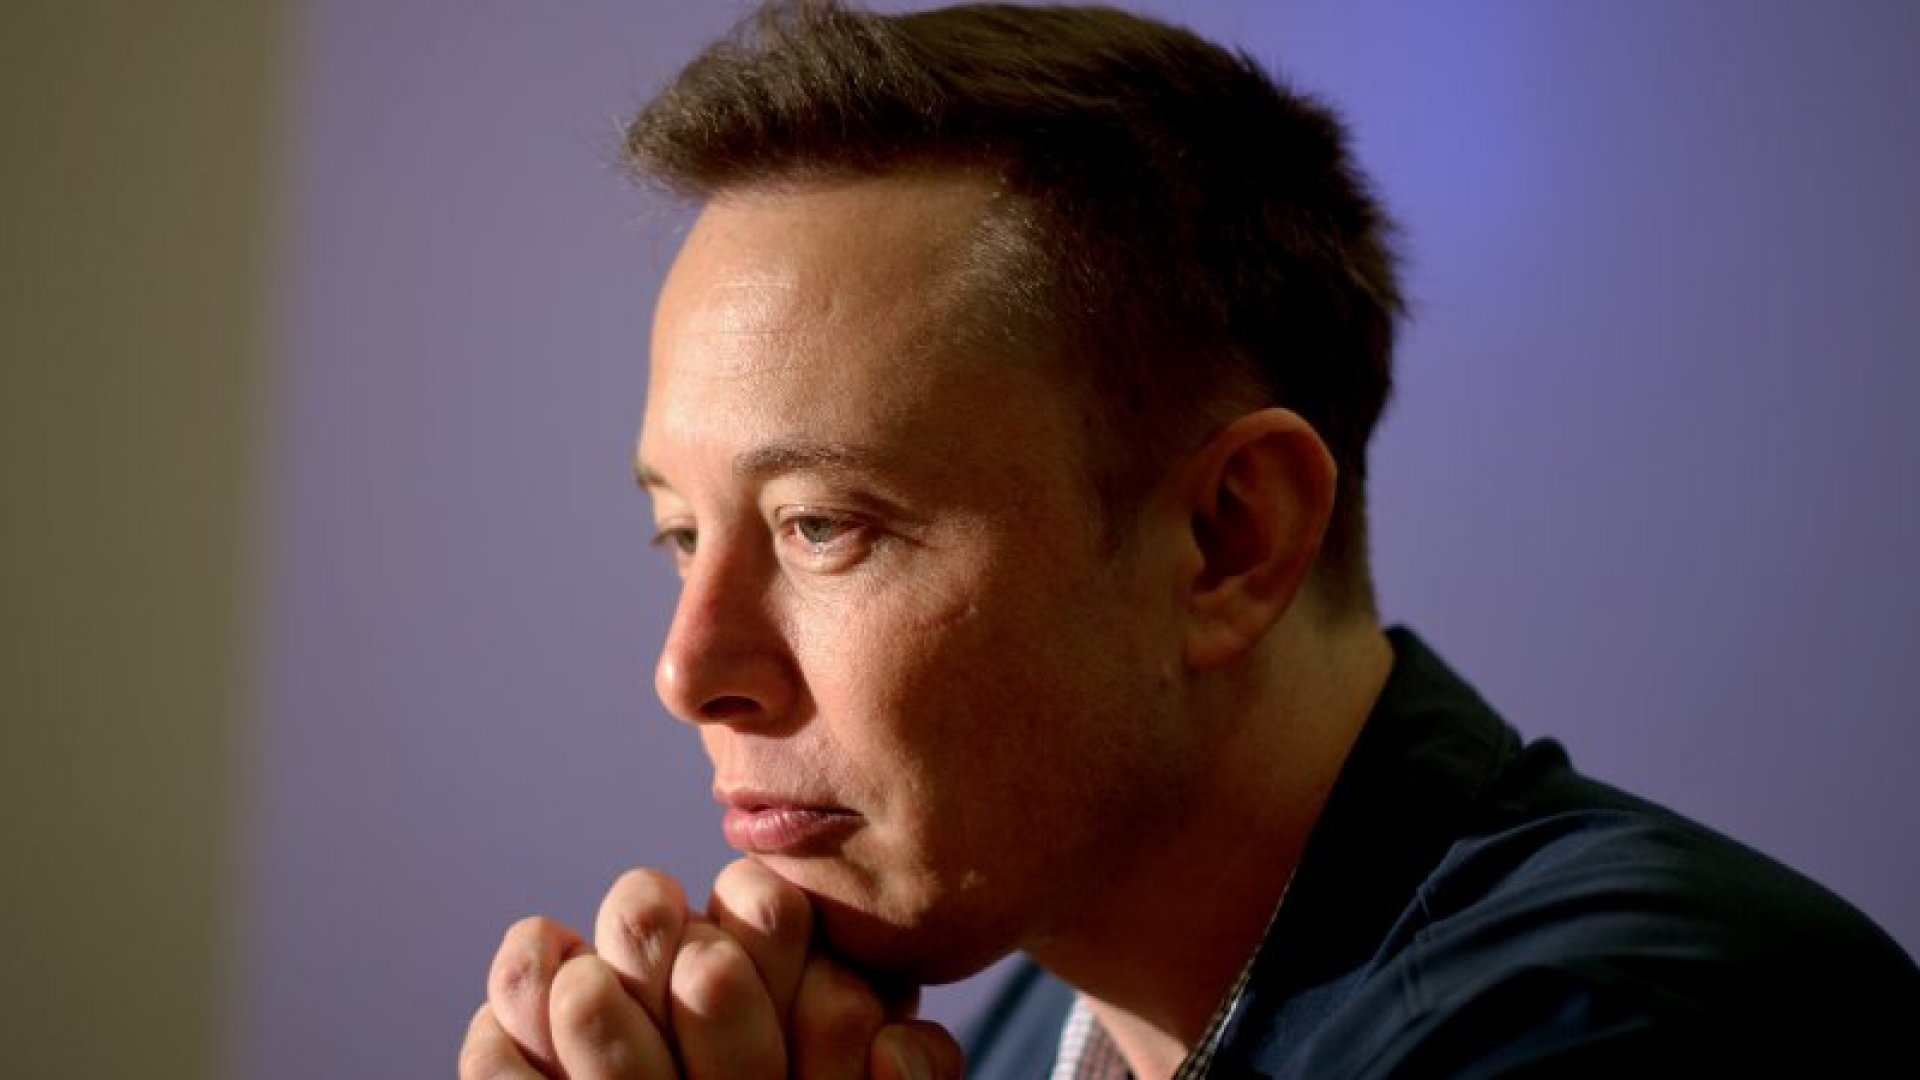 Elon Musk to Unveil SpaceX's Mars Ship and Space Suit This Year